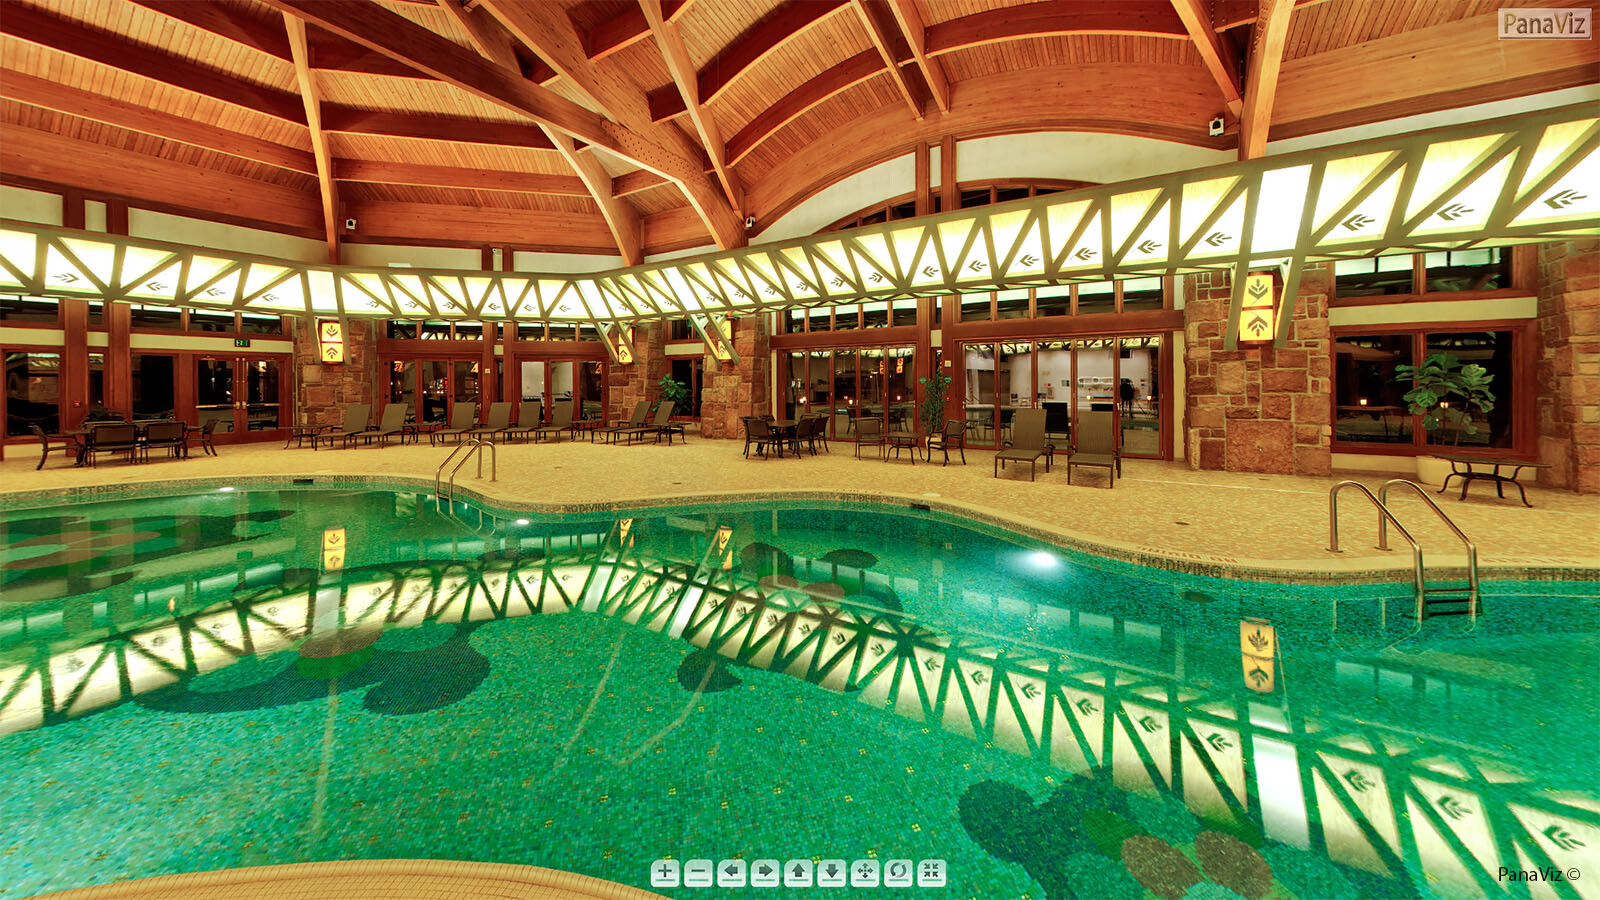 Click for 360 Virtual Tour of Casino Pool